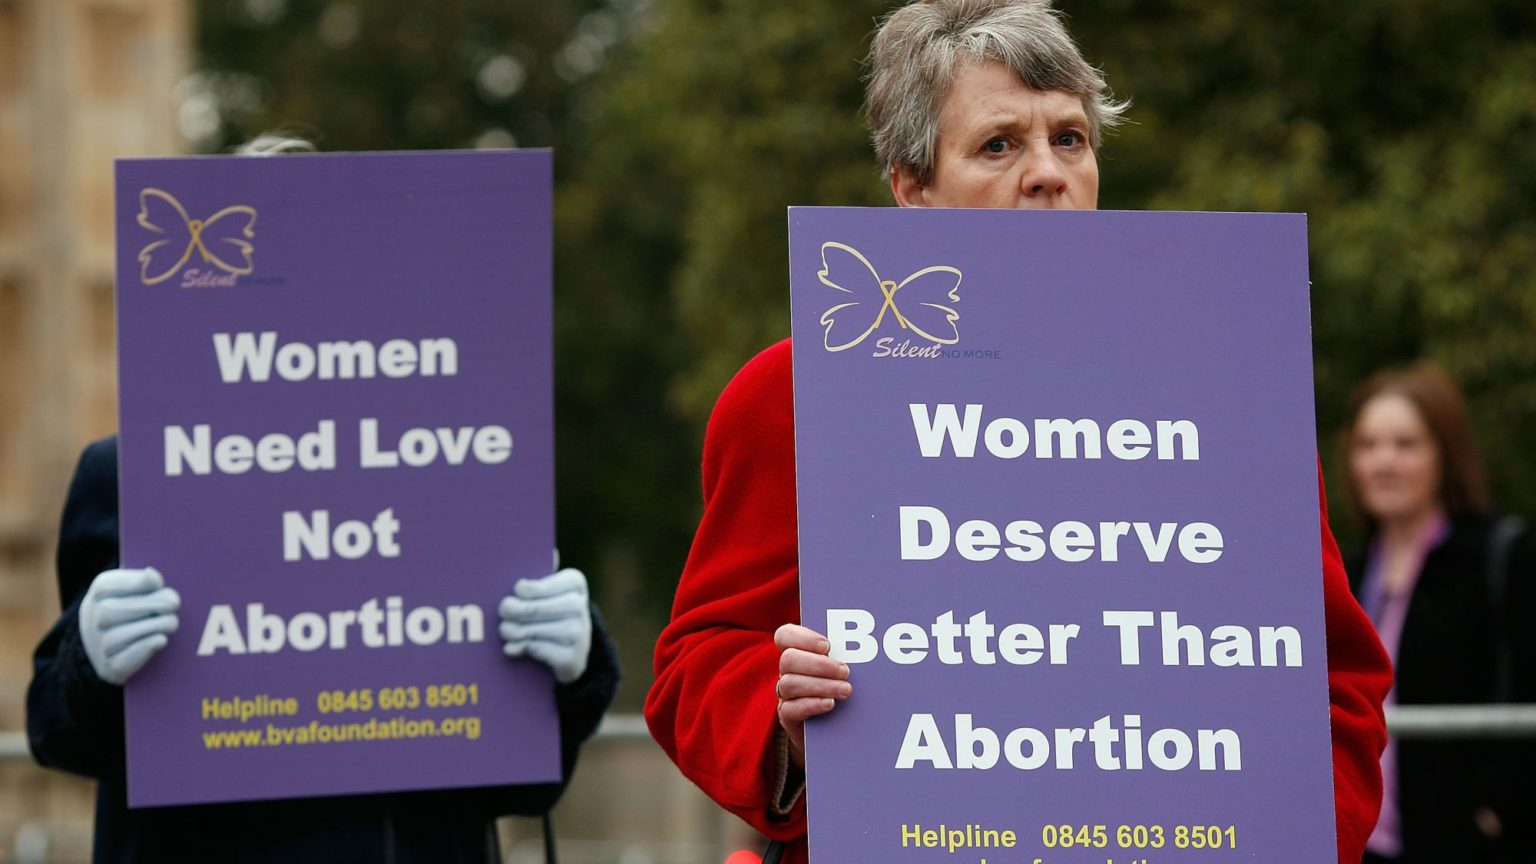 Protesting against abortion should not be a crime